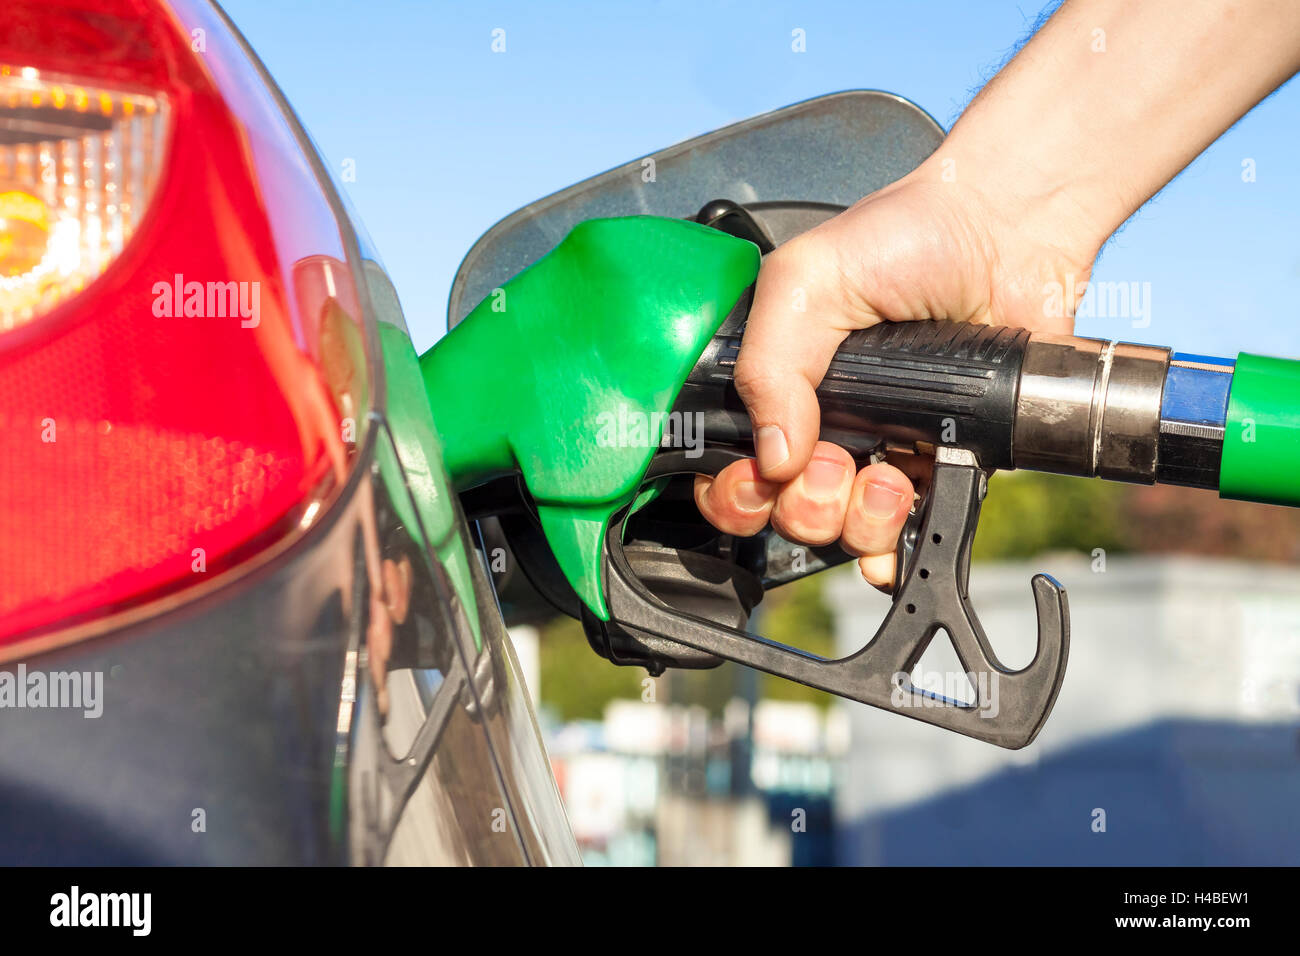 filling up gas tank stockfotos filling up gas tank bilder alamy. Black Bedroom Furniture Sets. Home Design Ideas